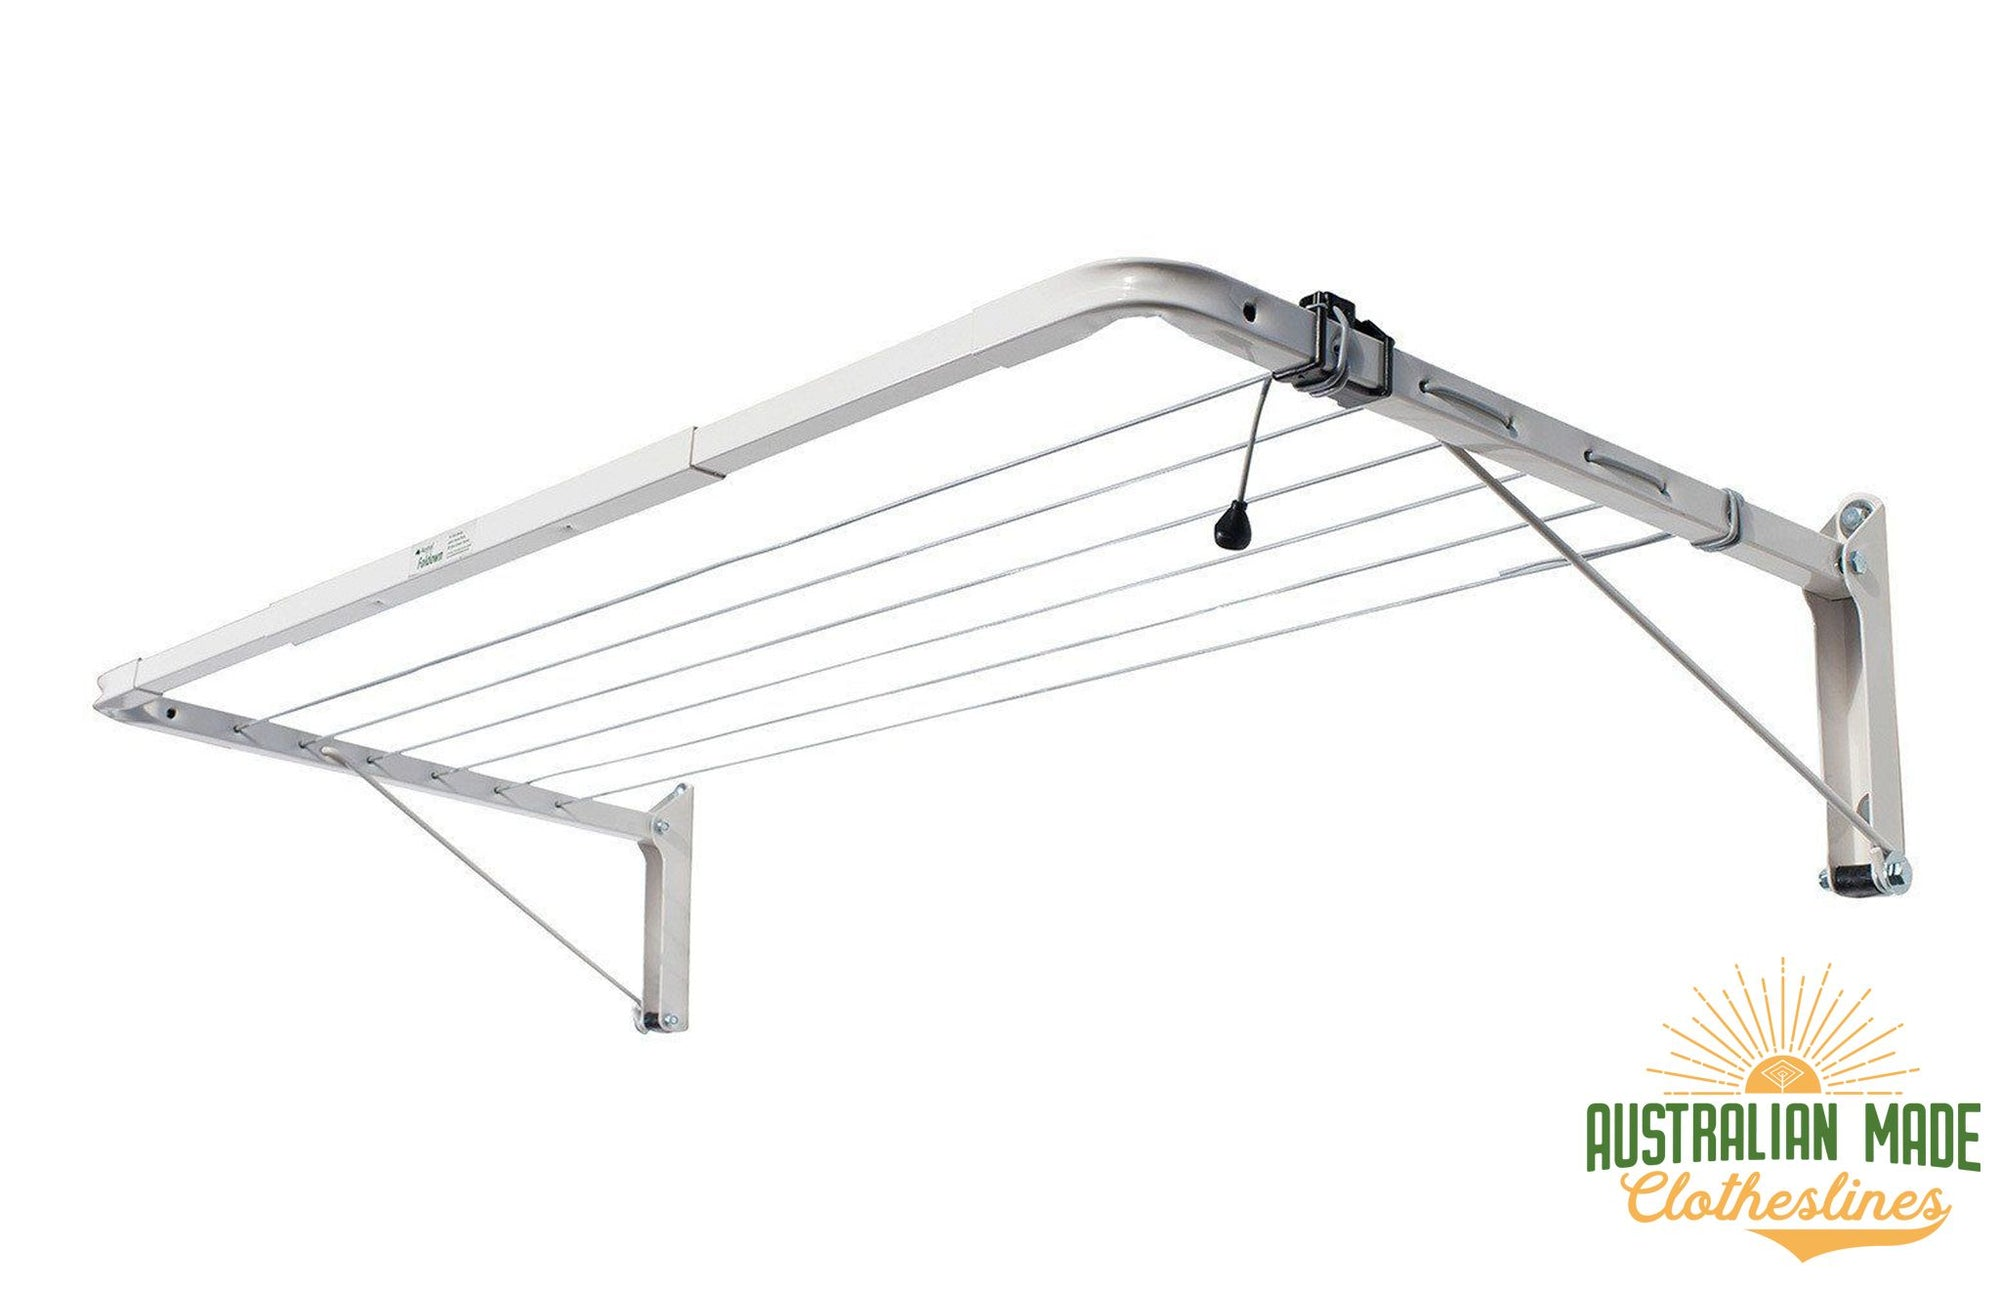 Austral Indoor Outdoor Clothesline - Colour White - Australian Made Clotheslines